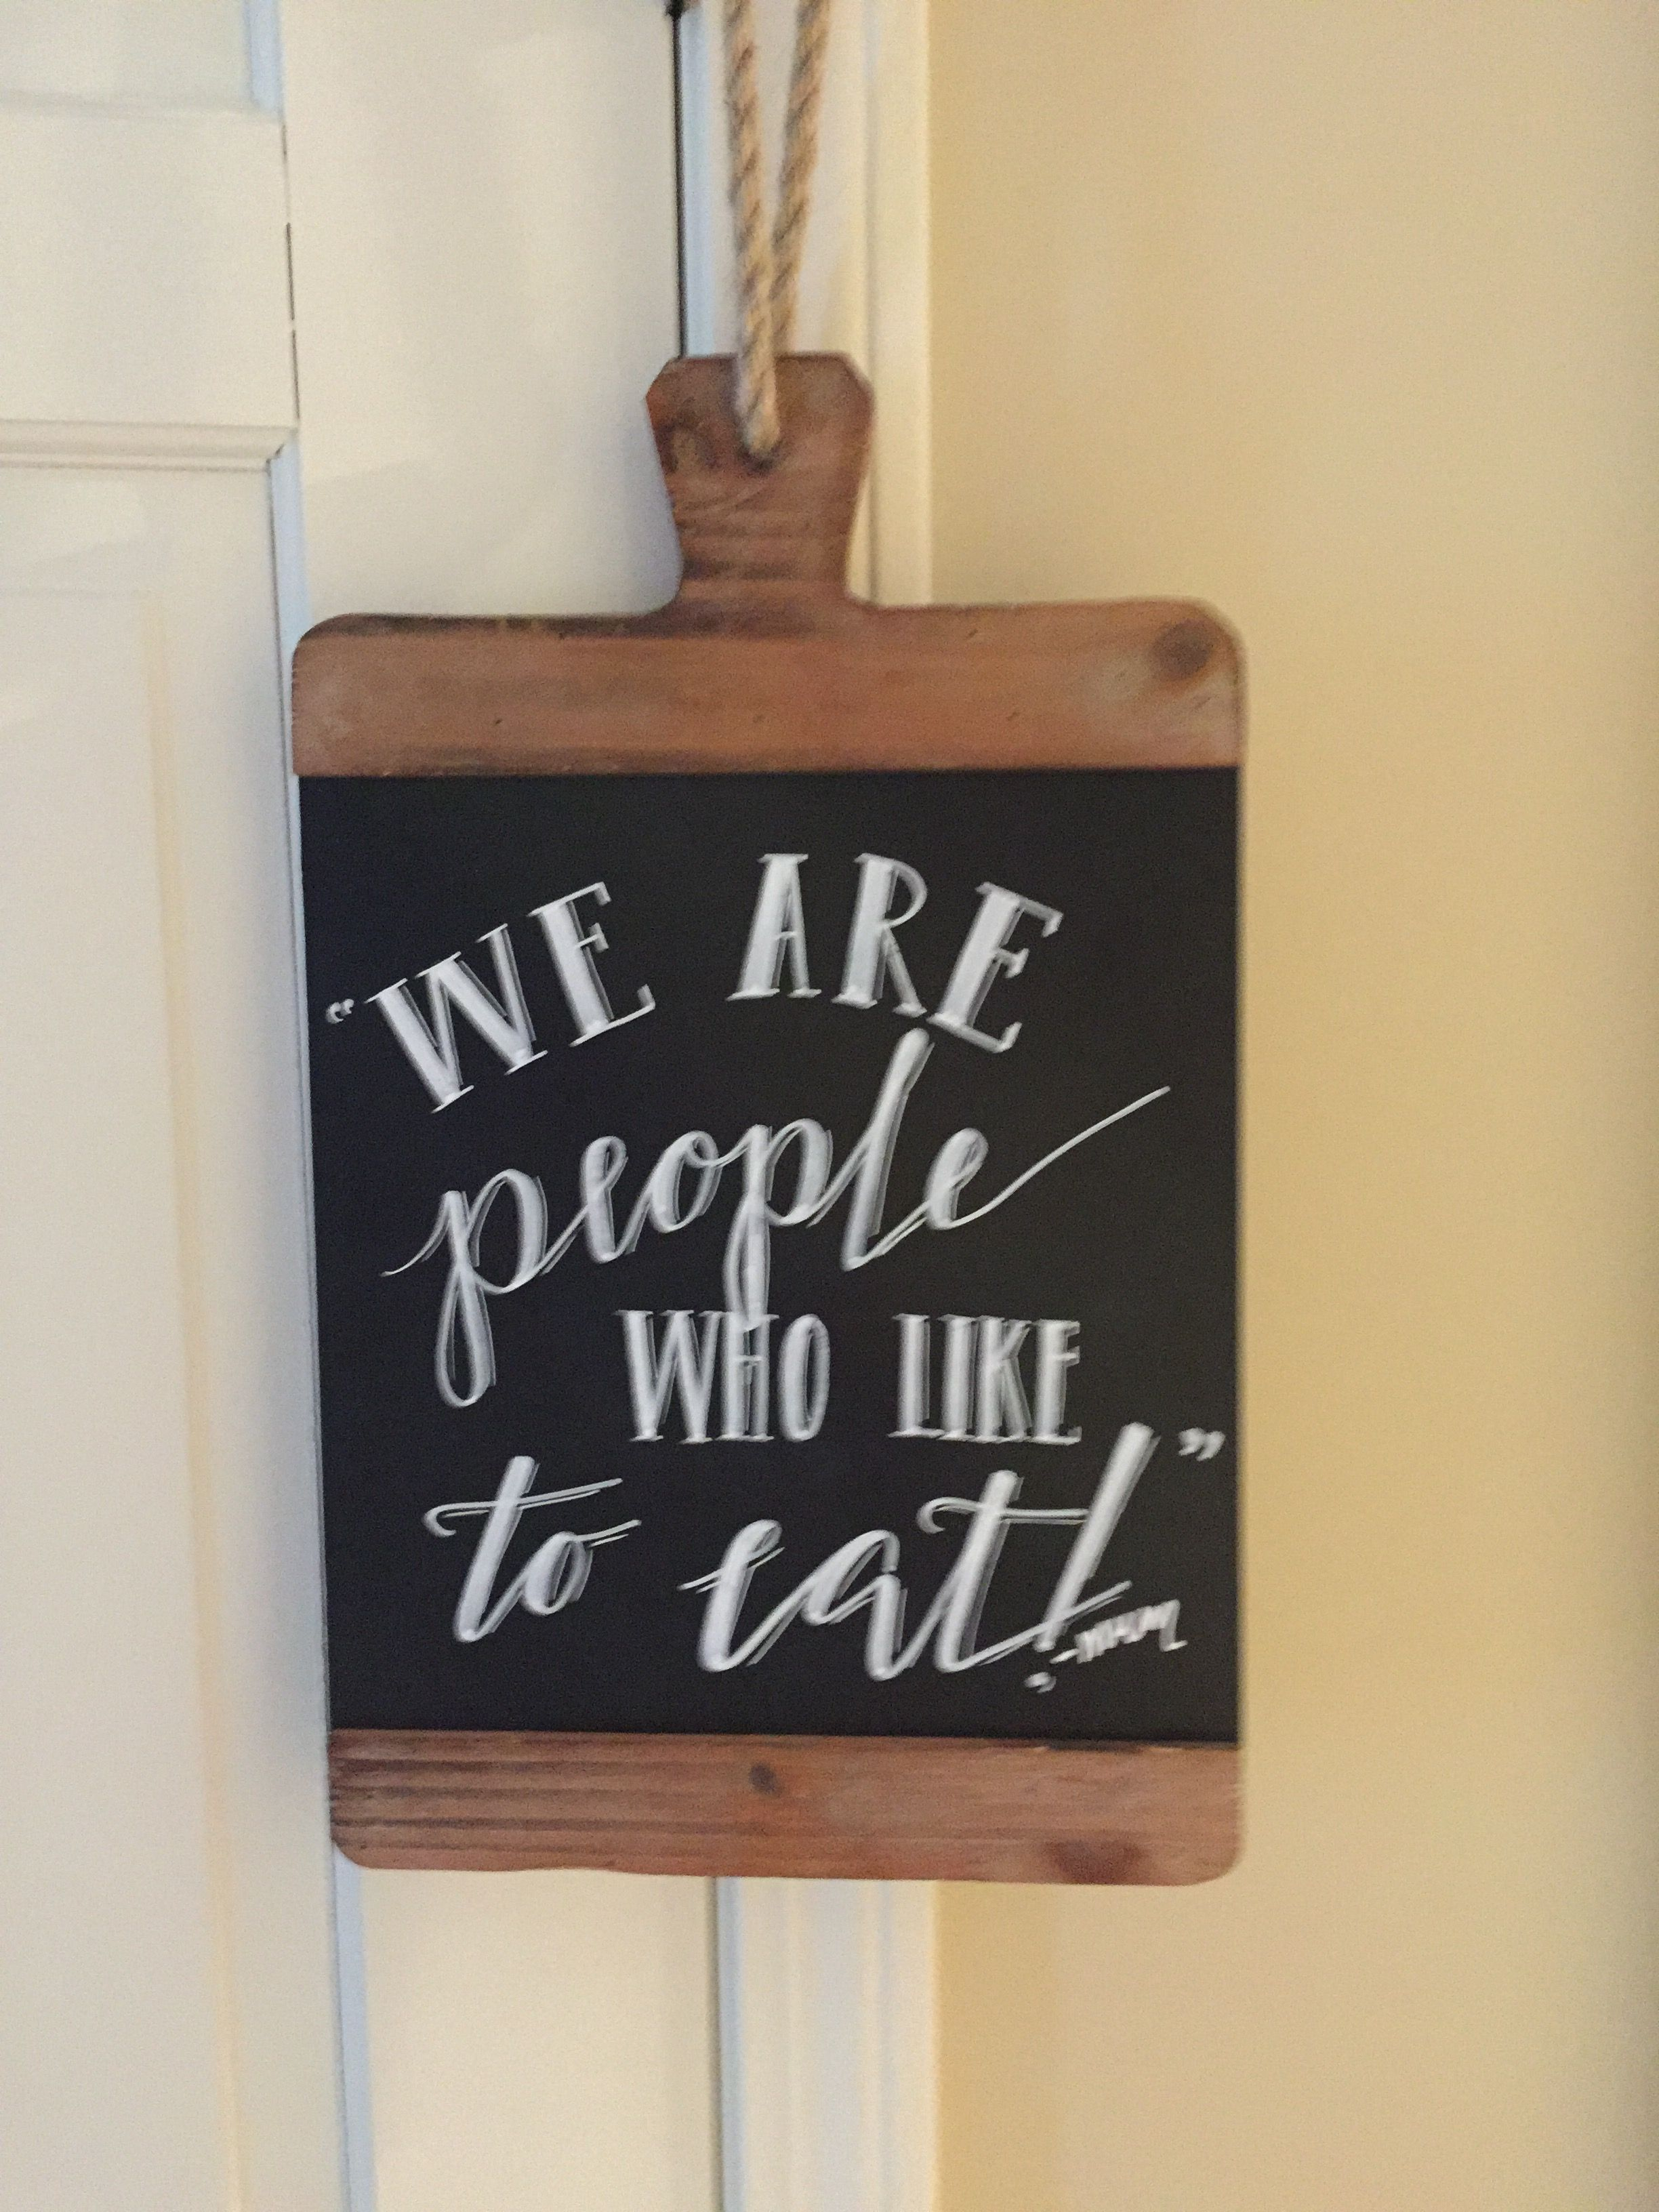 Pin by Kathy Pelusi on Quotes   Novelty sign, Home decor ...